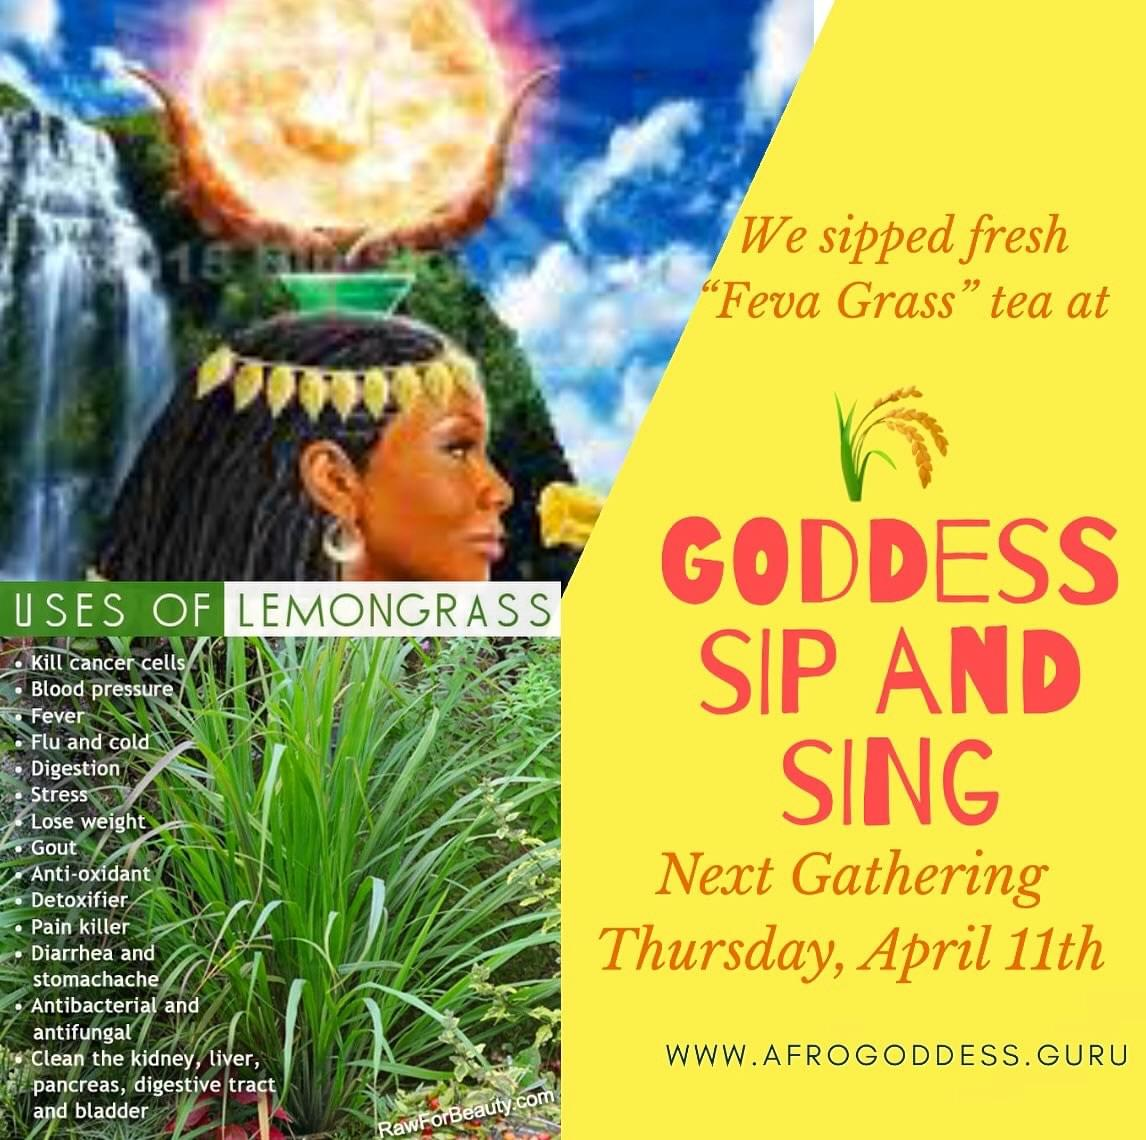 Goddess Sip and Sing